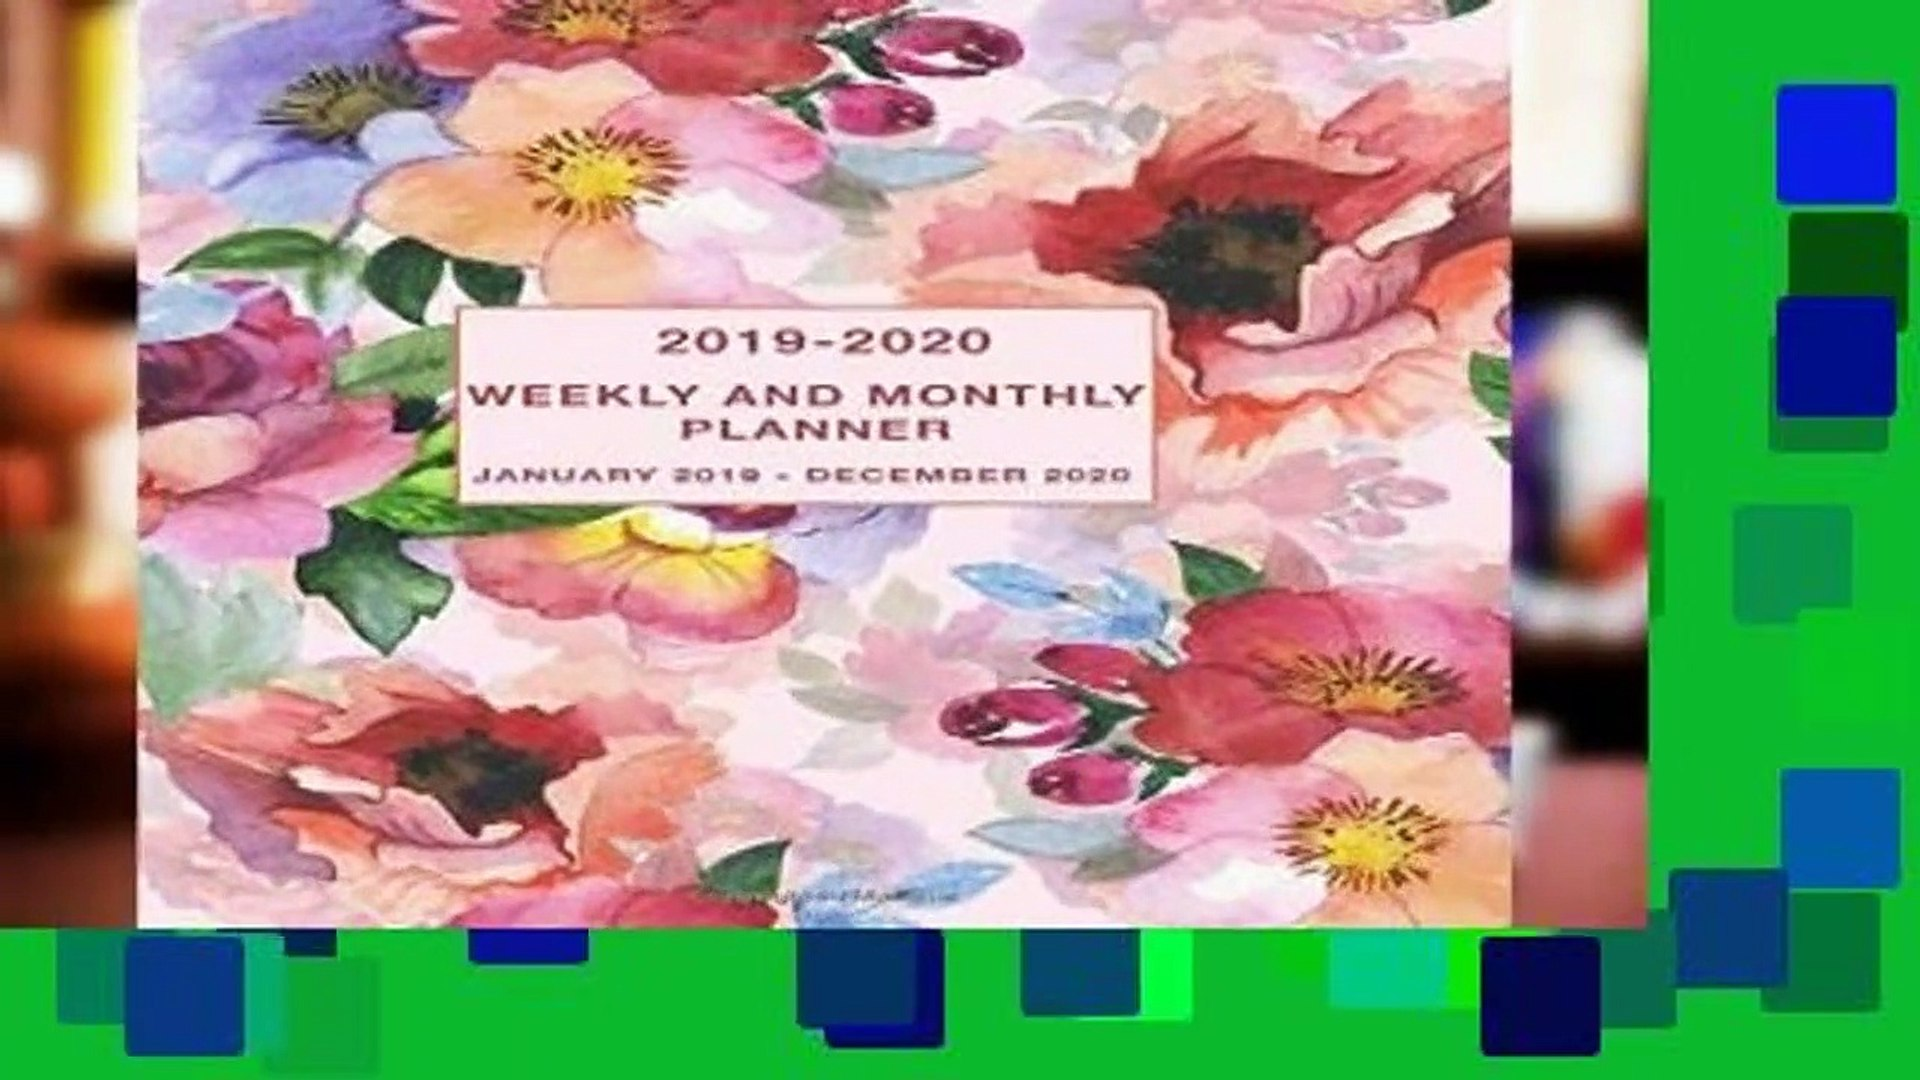 About For Books  2019-2020 Weekly and Monthly Planner January 2019 - December 2020: Two Year